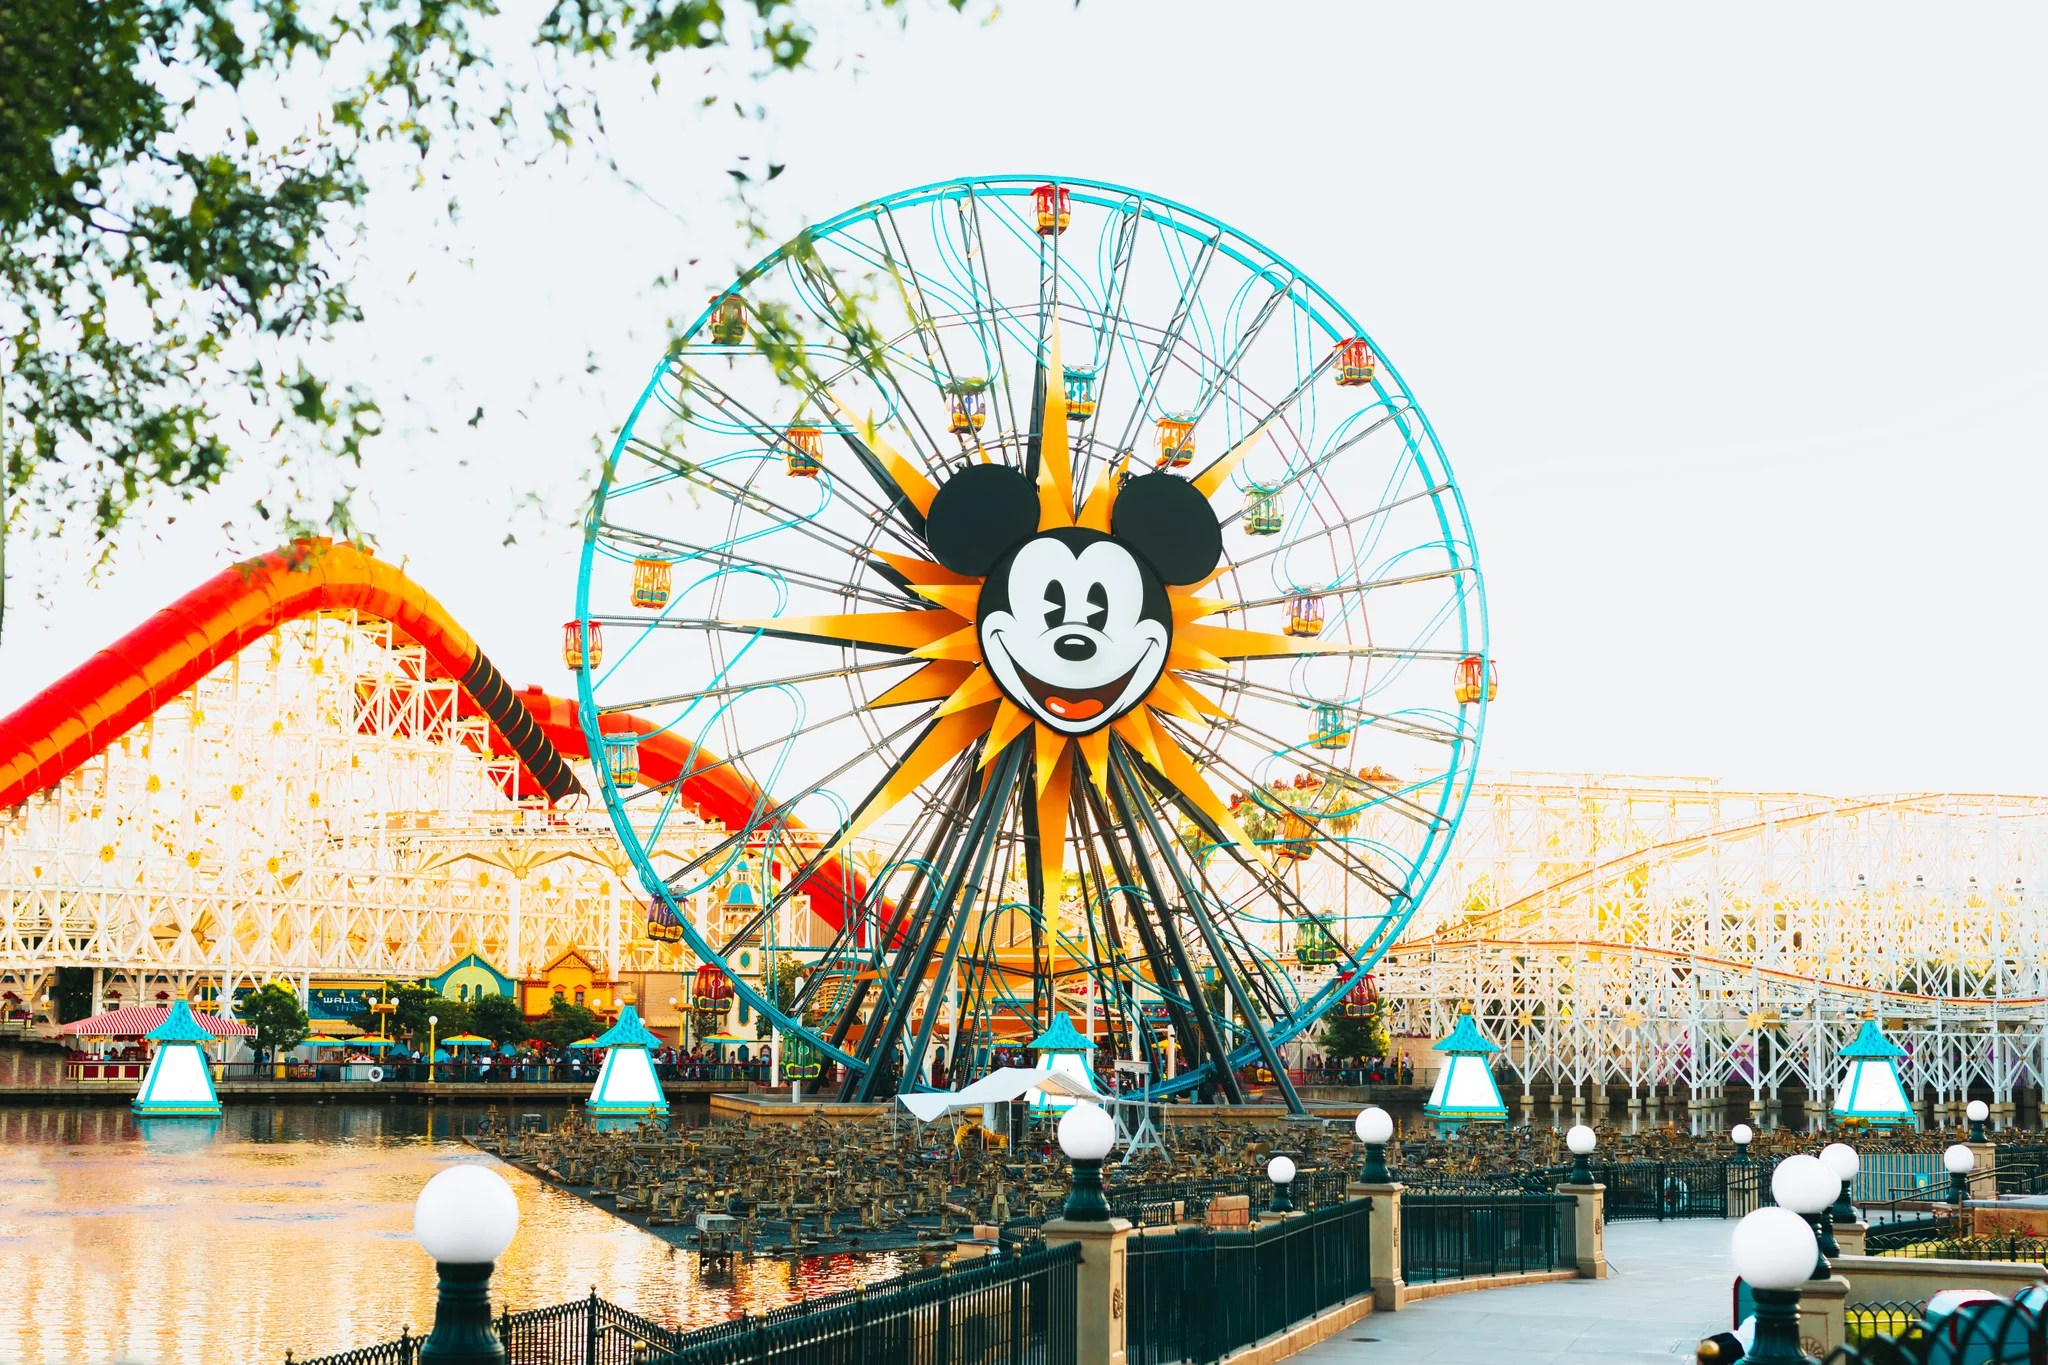 What Day of the Week Is Disneyland the Least Crowded? Effectively, Technically There Are 2